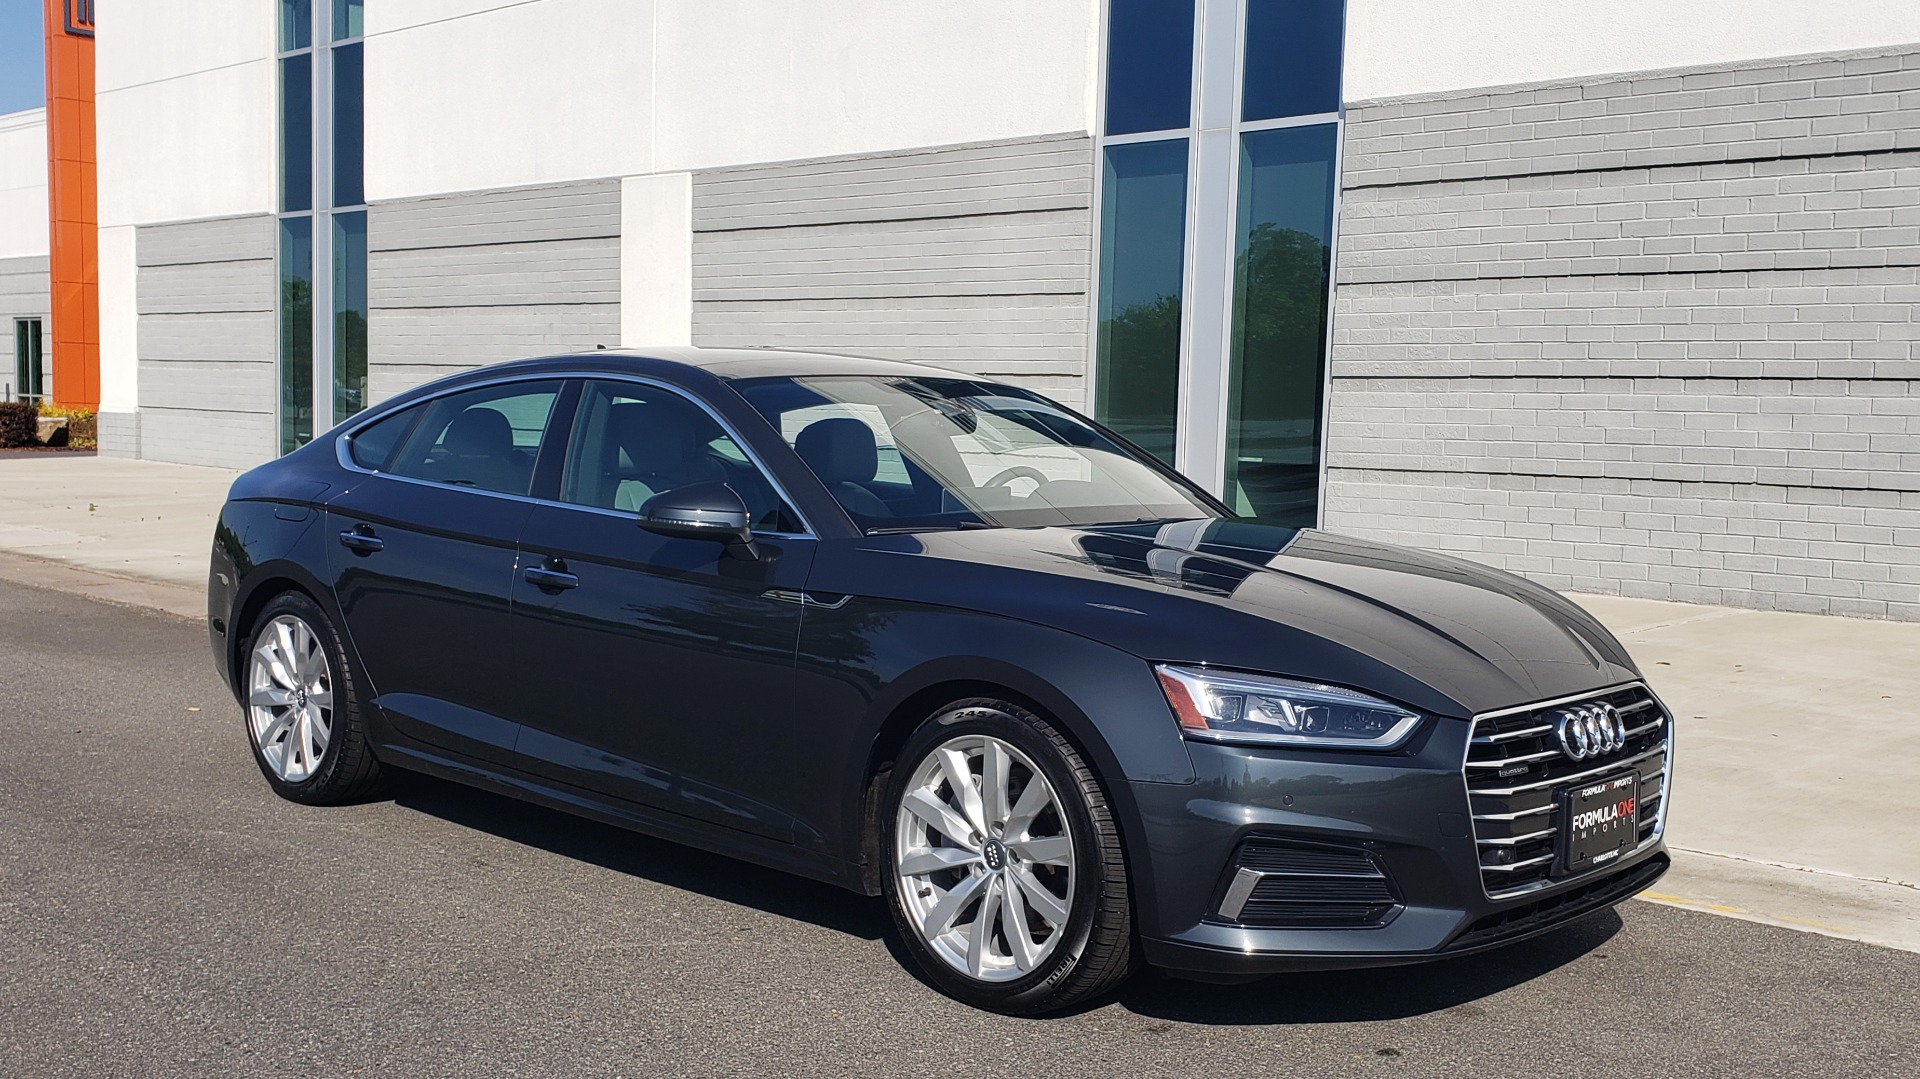 Used 2018 Audi A5 SPORTBACK PREMIUM PLUS 2.0T / AWD / NAV / B&O SND / SUNROOF / REARVIEW for sale Sold at Formula Imports in Charlotte NC 28227 14